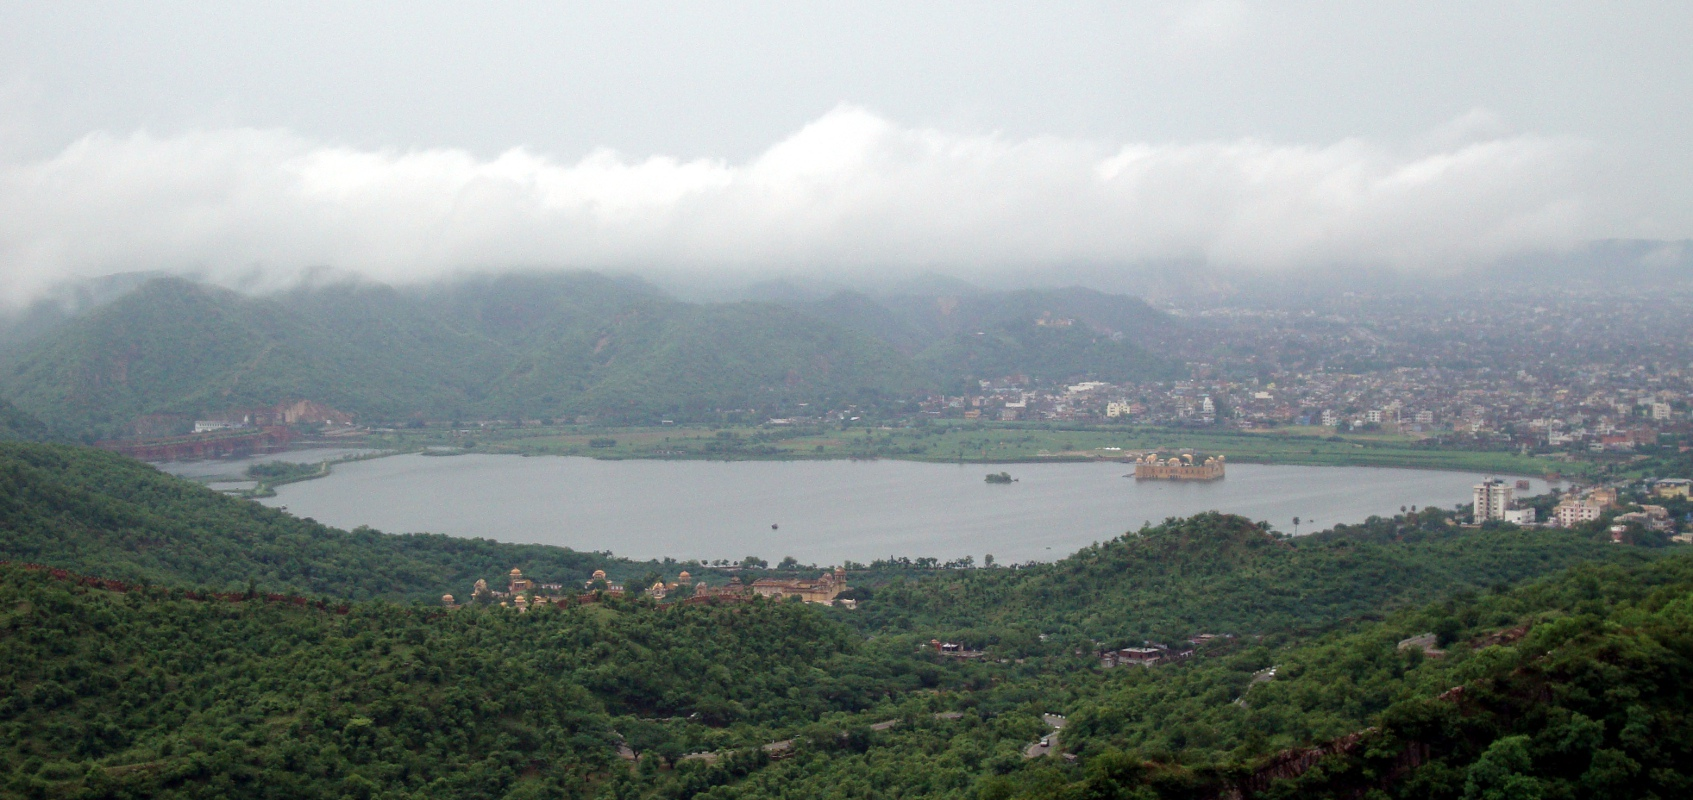 Hilltop view of Jal Mahal Sagar.